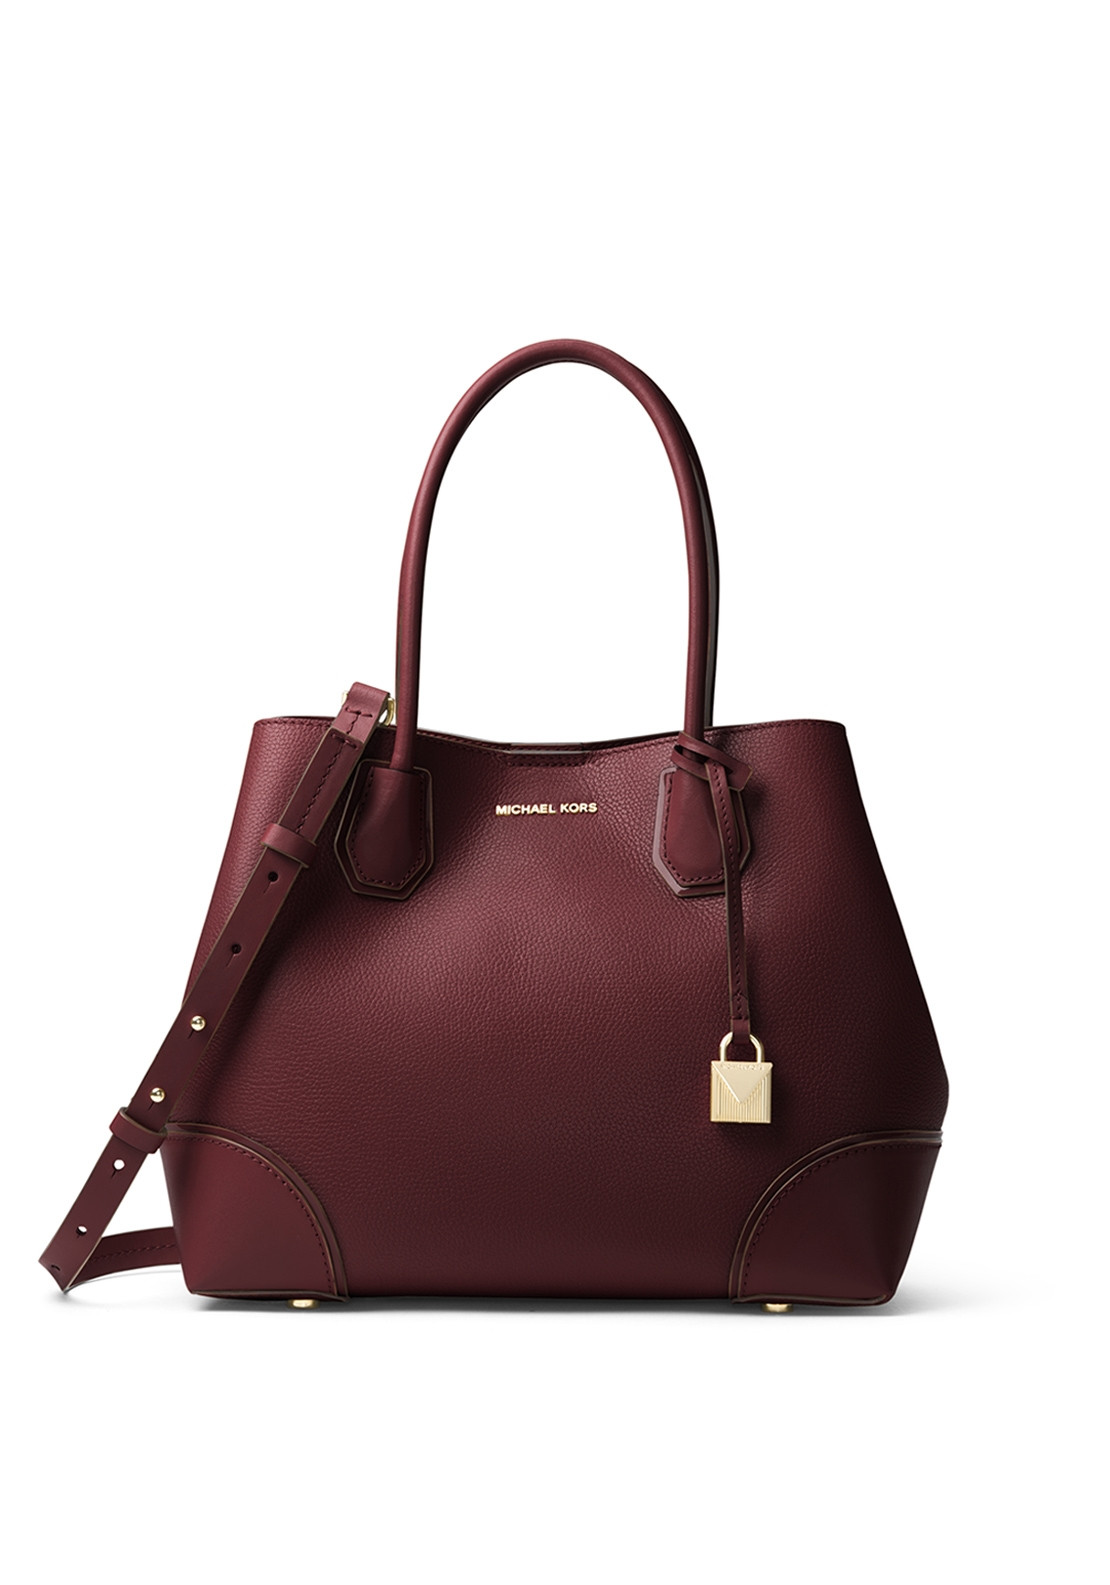 5614f40b8c55 MICHAEL Michael Kors Mercer Gallery Medium Leather Satchel Bag, Oxblood. Be  the first to review this product